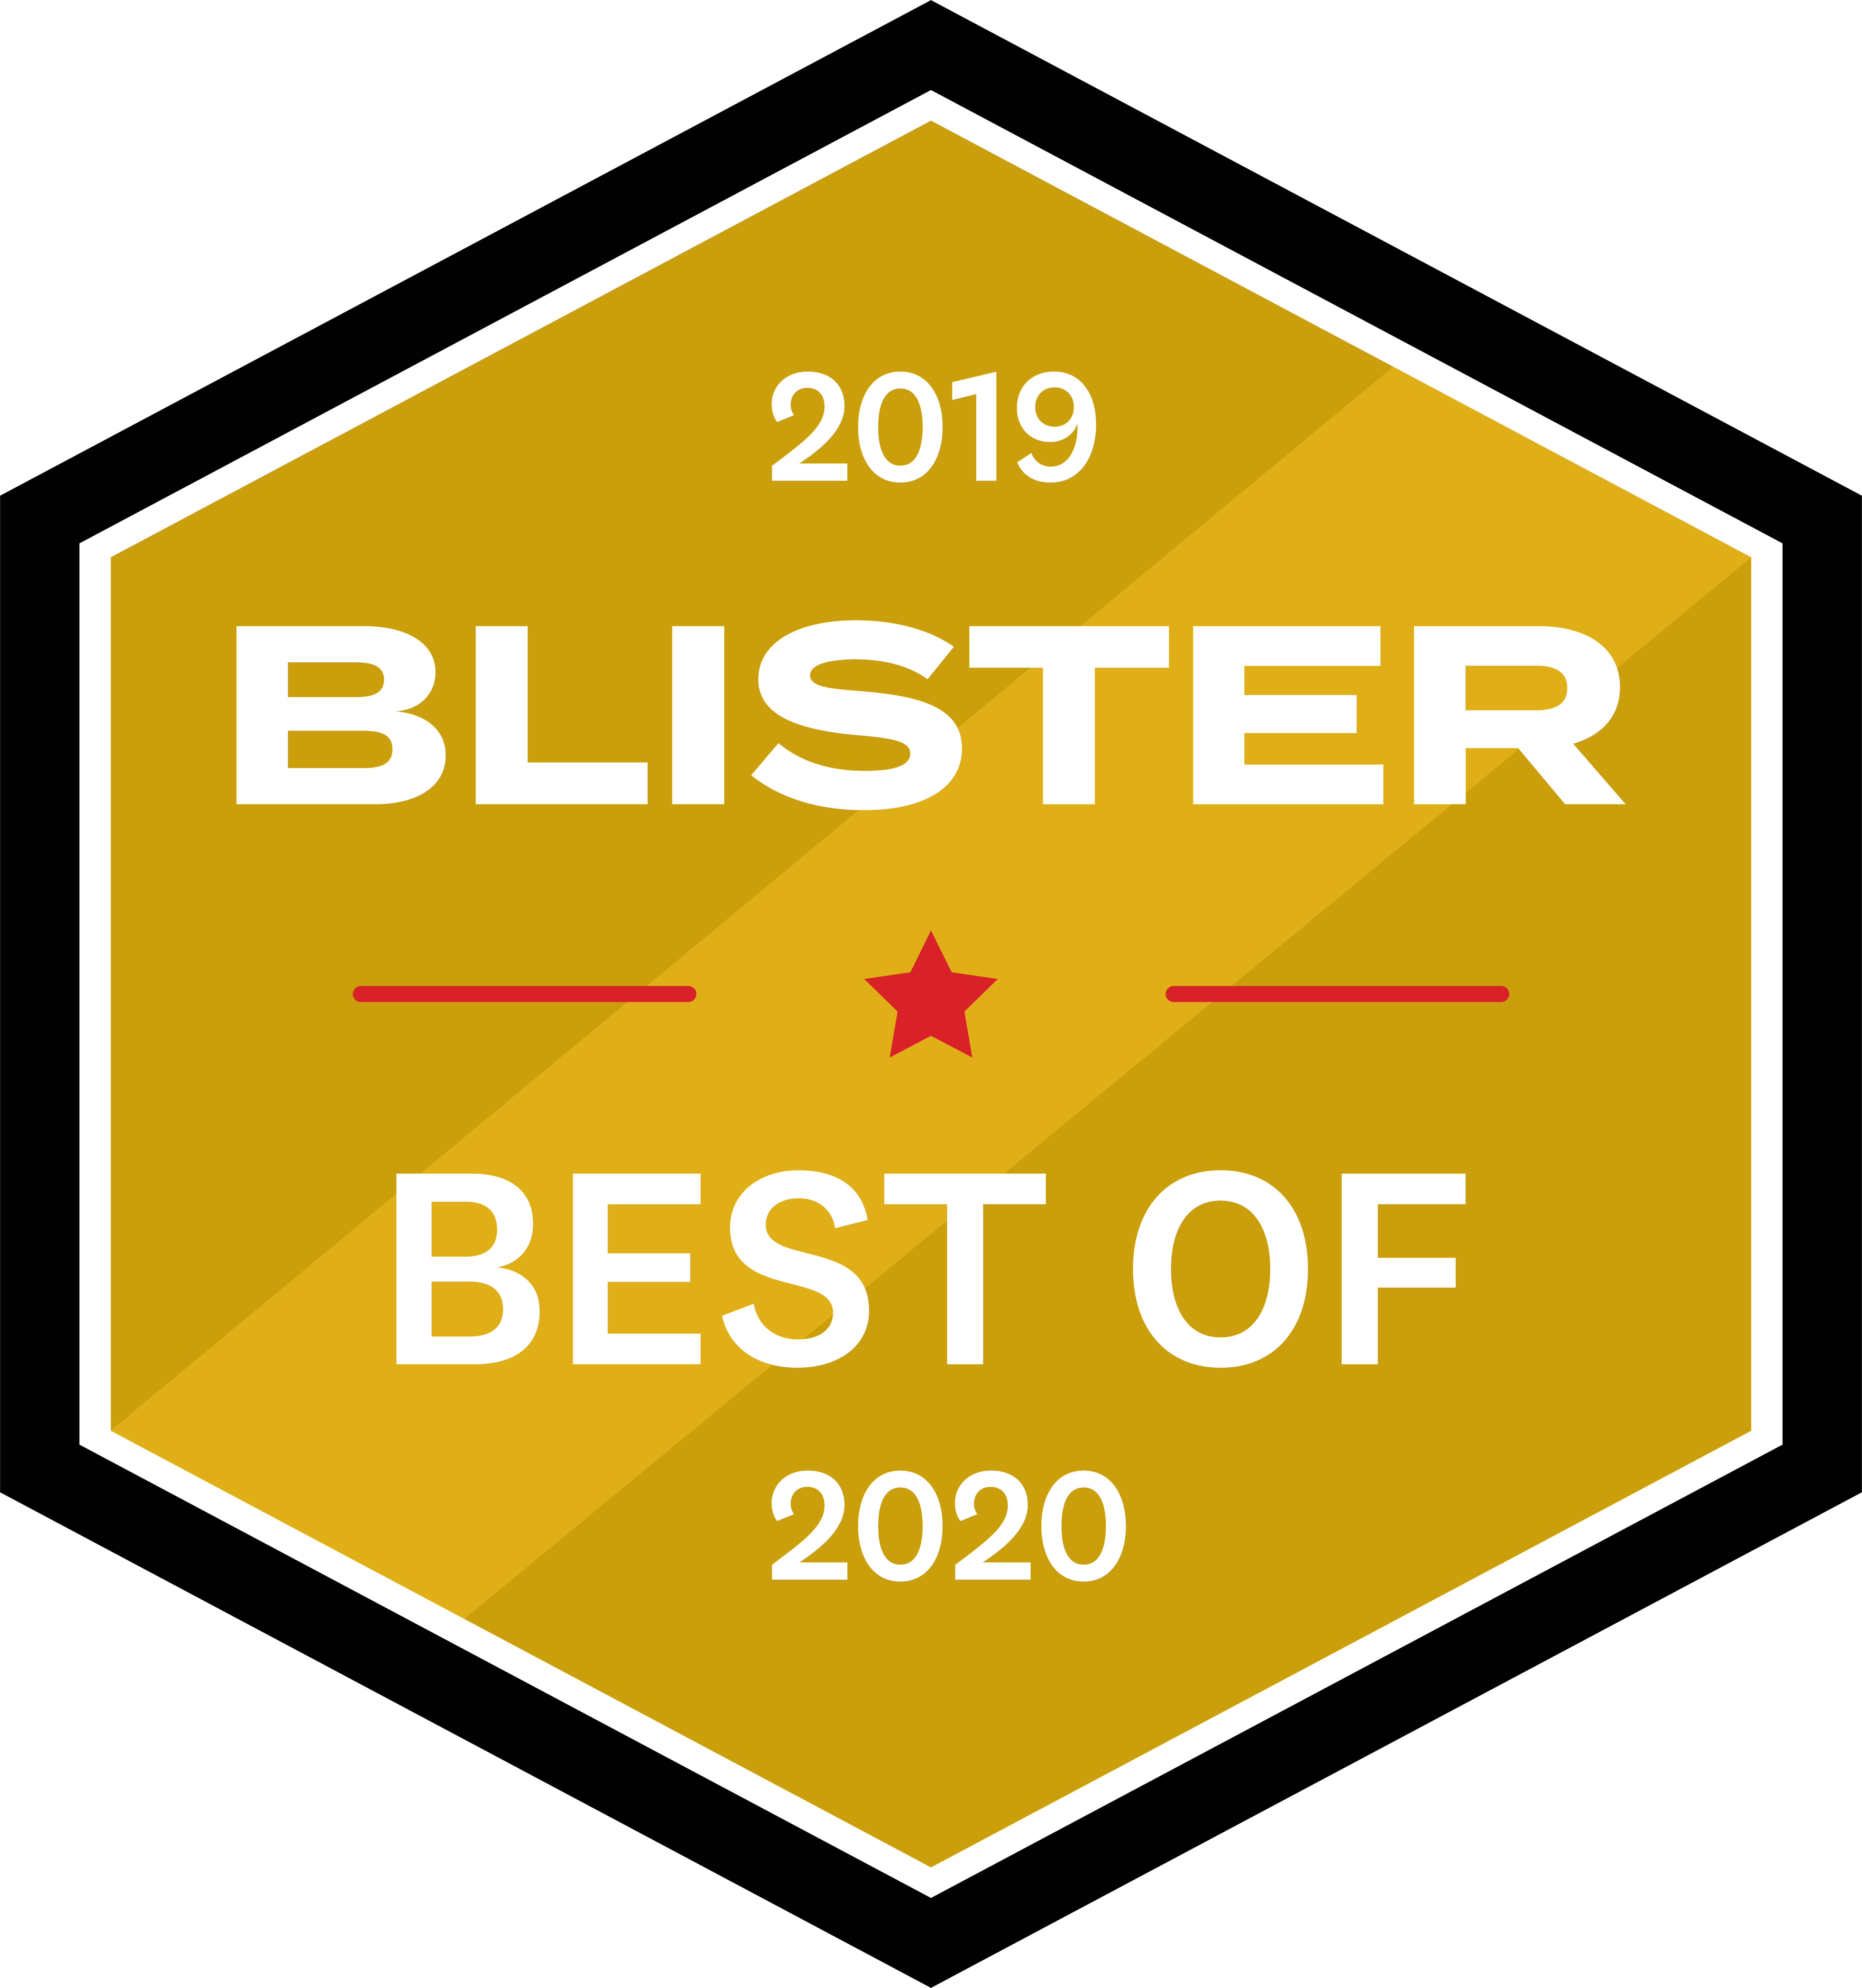 Bister Review Best Of Badge